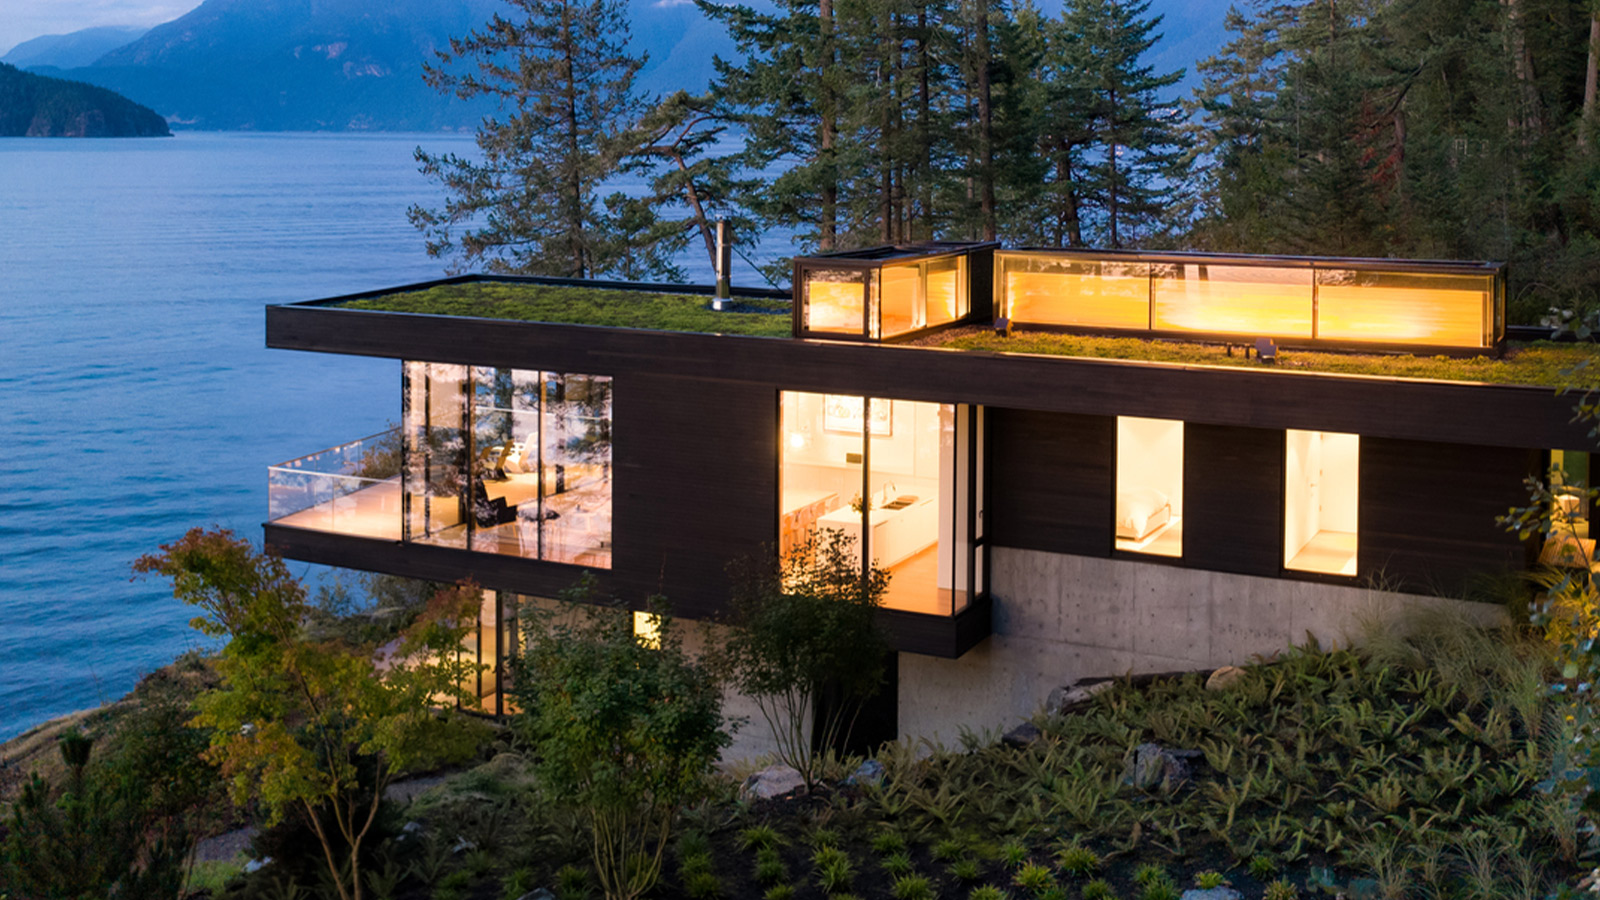 Bowen Island House by Office of Mcfarlane Biggar Architects + Designers Inc.